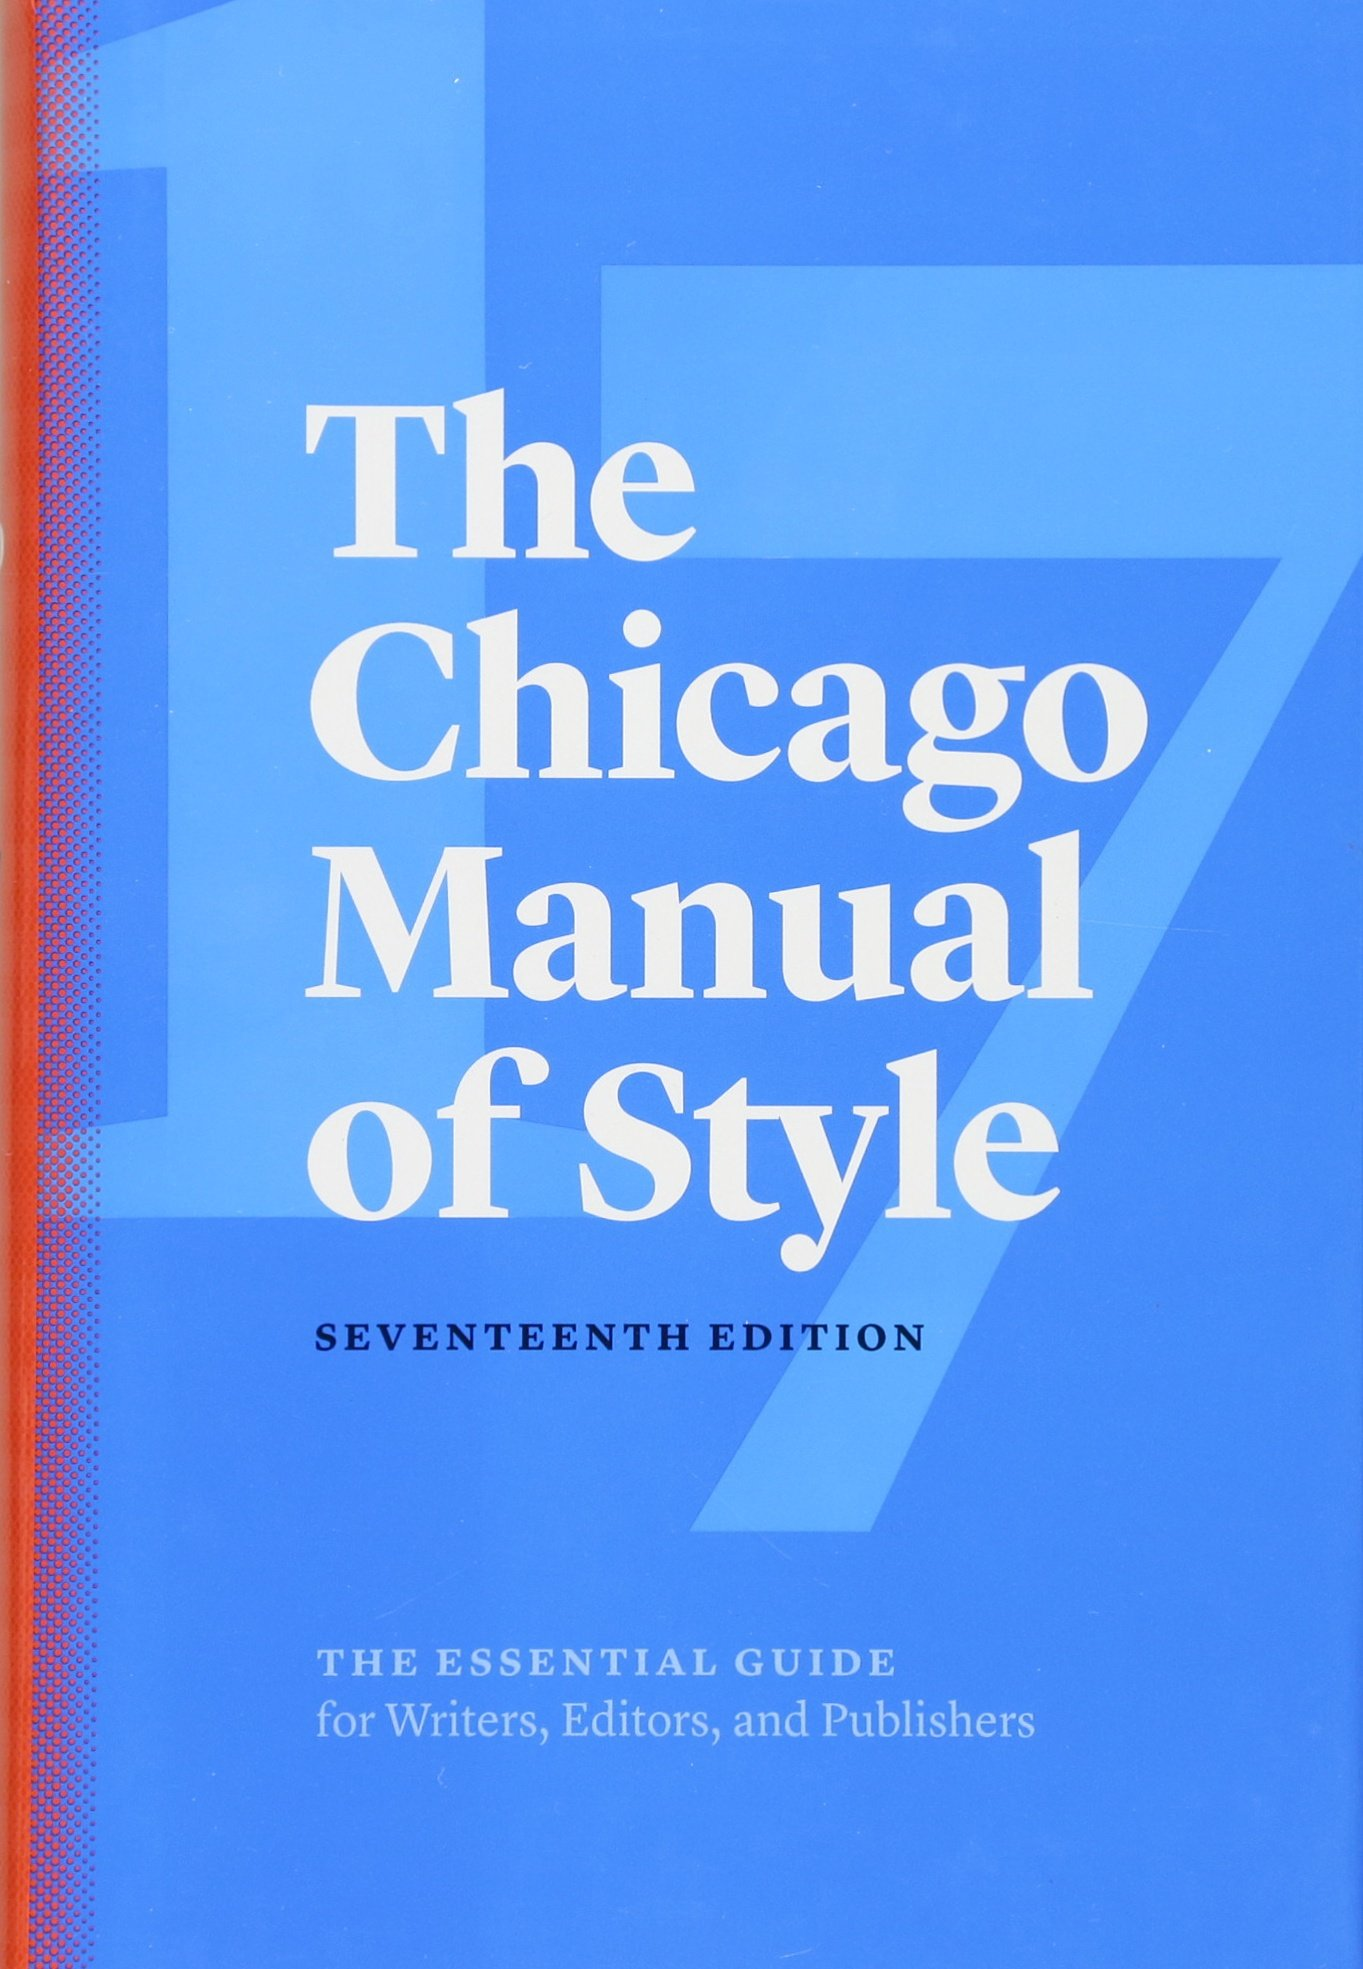 Buy The Chicago Manual of Style 17e Book Online at Low Prices in India |  The Chicago Manual of Style 17e Reviews & Ratings - Amazon.in